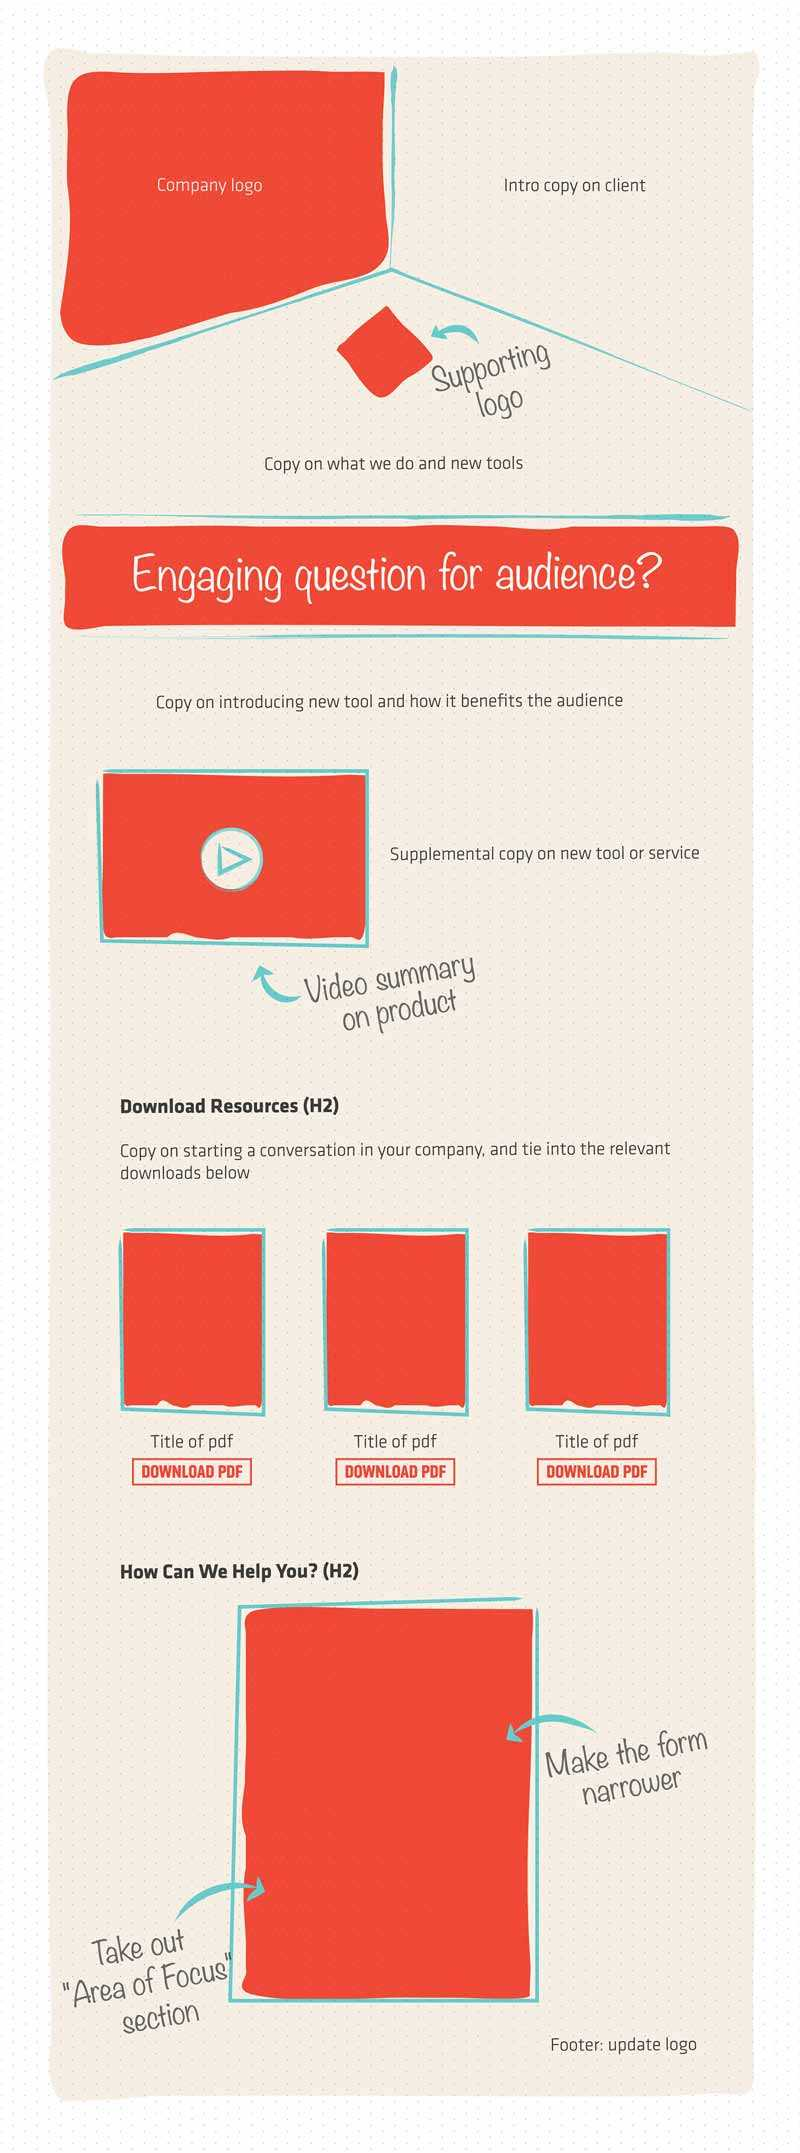 Instructions for creating a virtual whiteboard